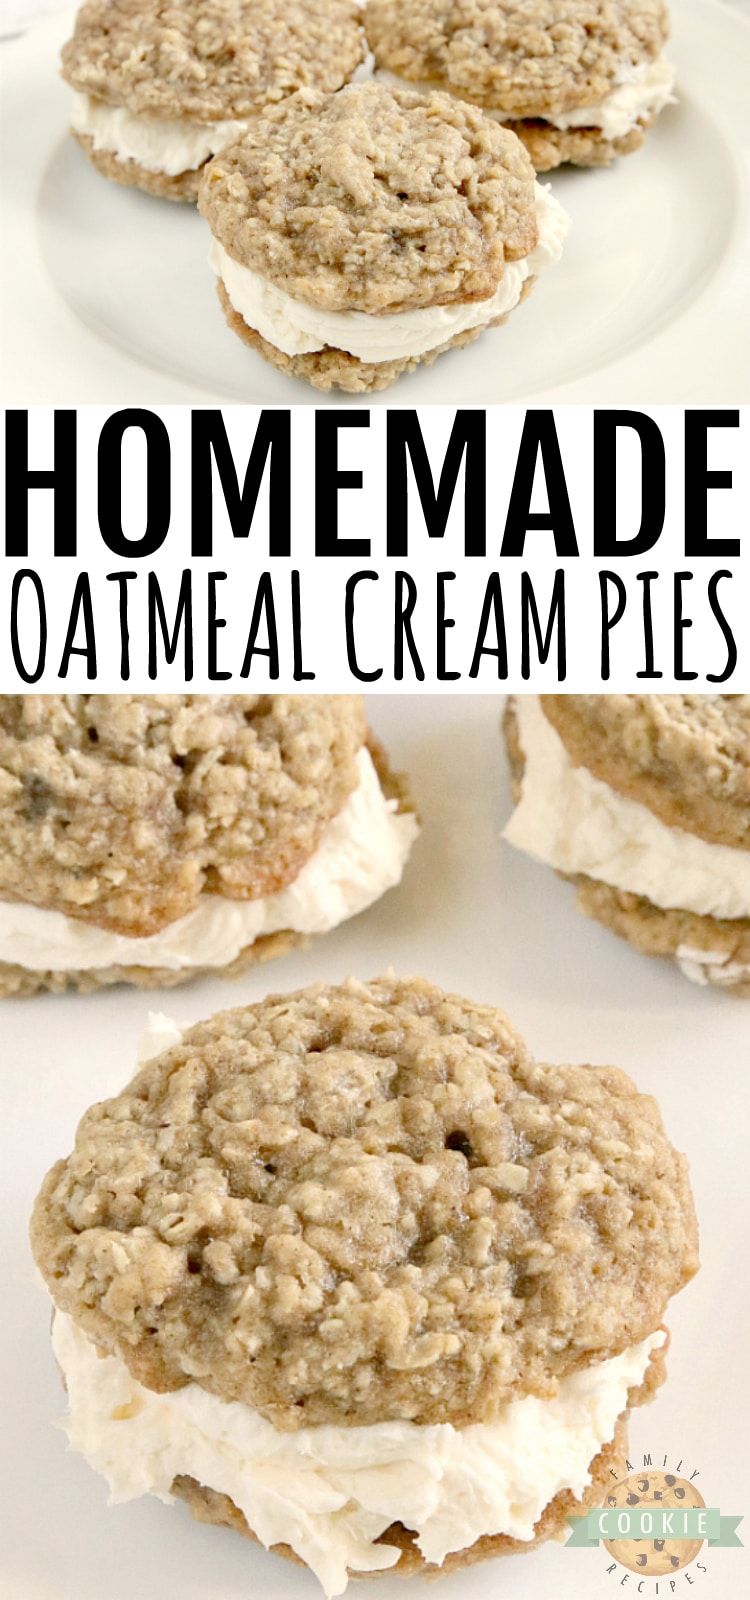 Homemade Oatmeal Cream Pies are made with a delicious creamy filling that is sandwiched between two soft and chewy oatmeal cookies. Even better than the store-bought variety that we all know and love!